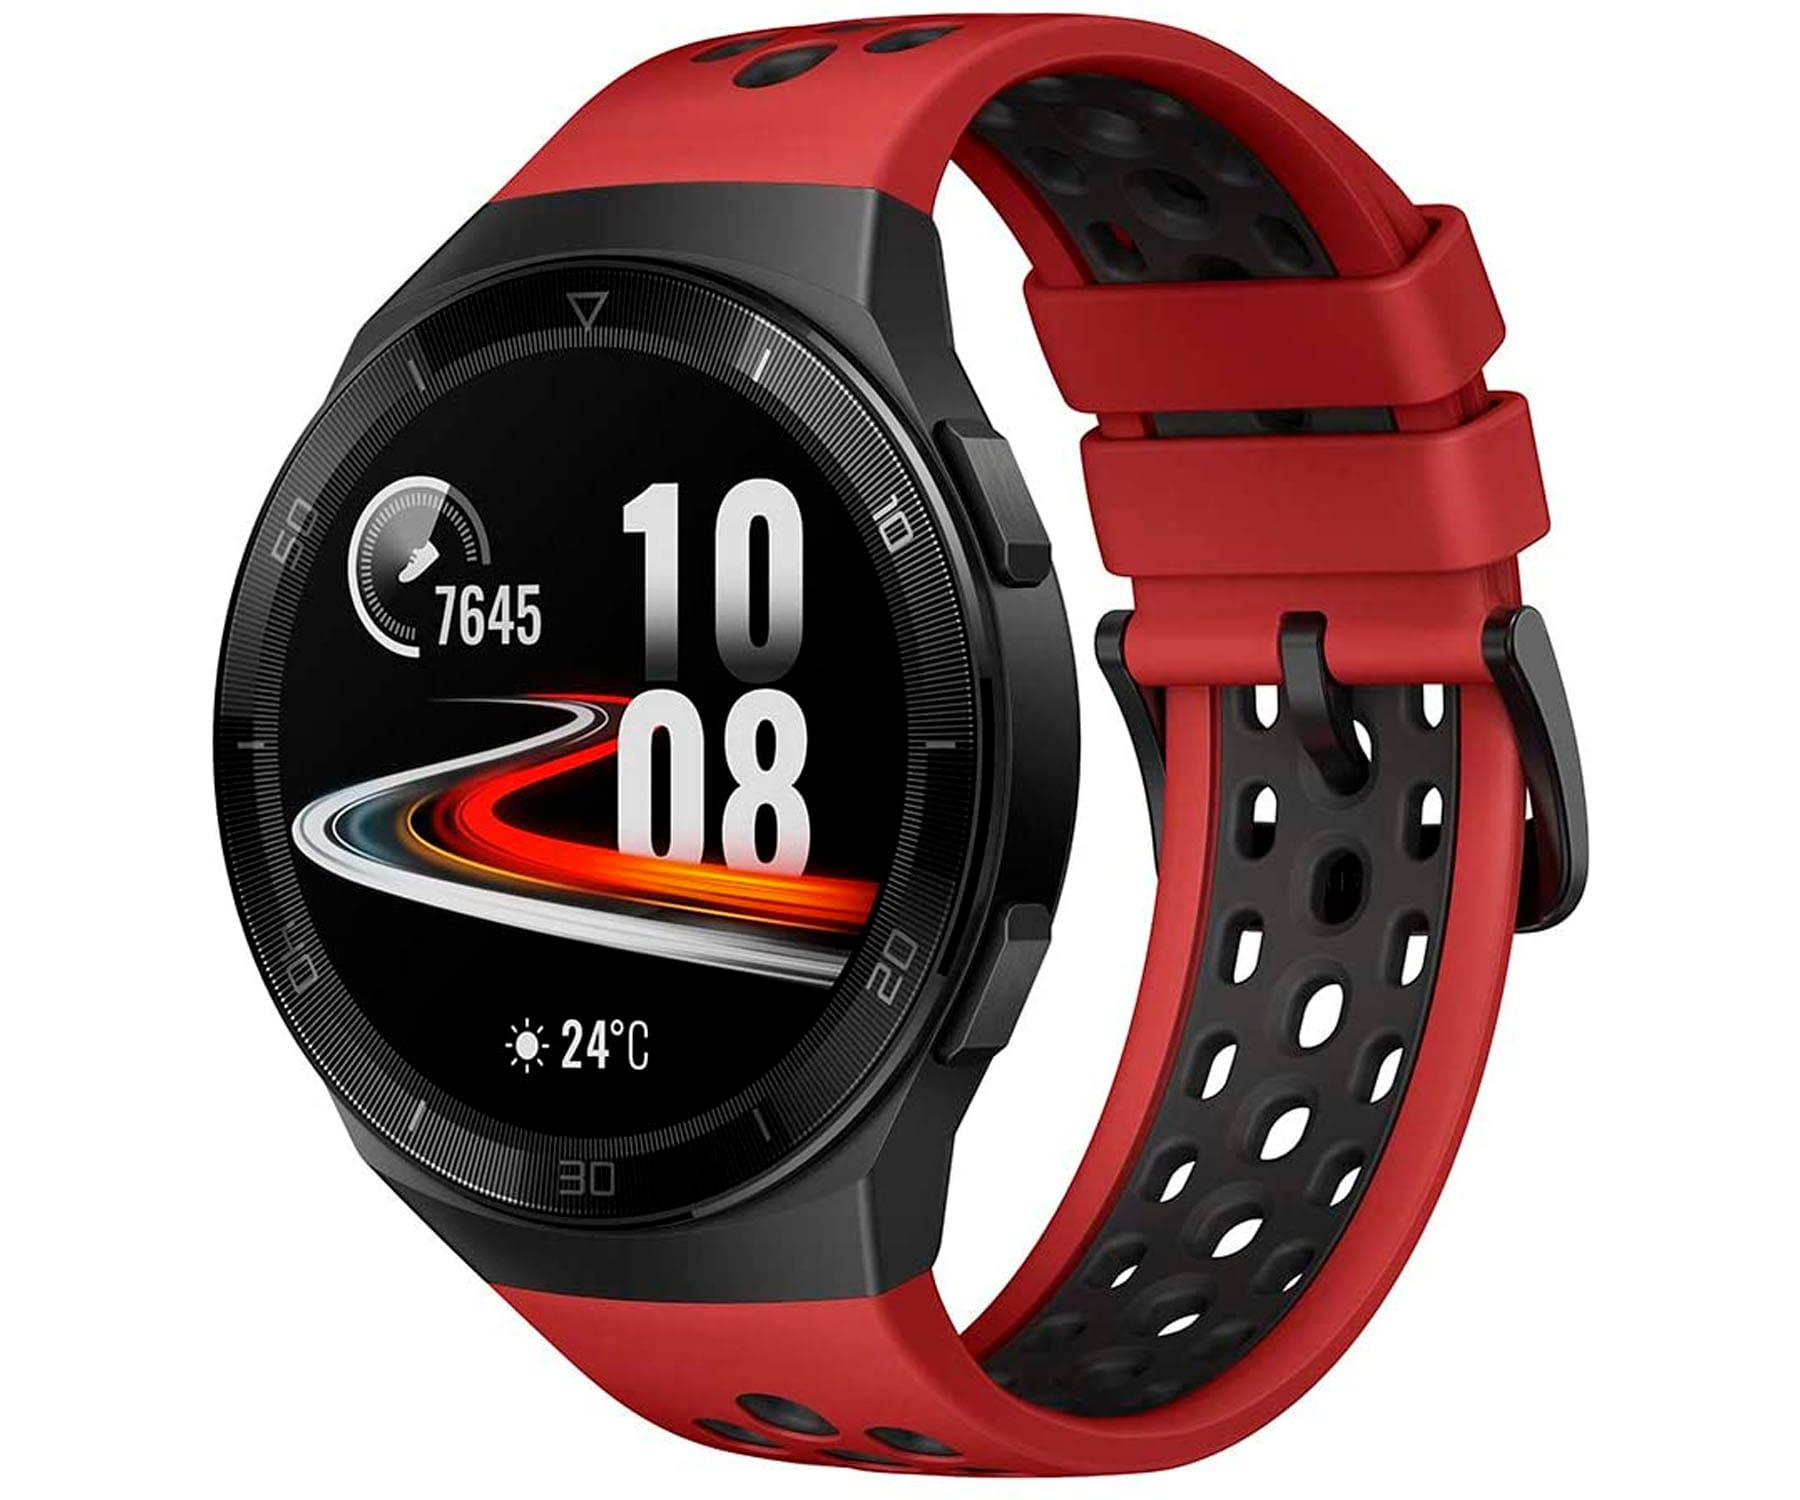 HUAWEI WATCH GT 2e SPORT ROJO SMARTWATCH TÁCTIL AMOLED 1.39'' GPS 5ATM BLUETOOTH